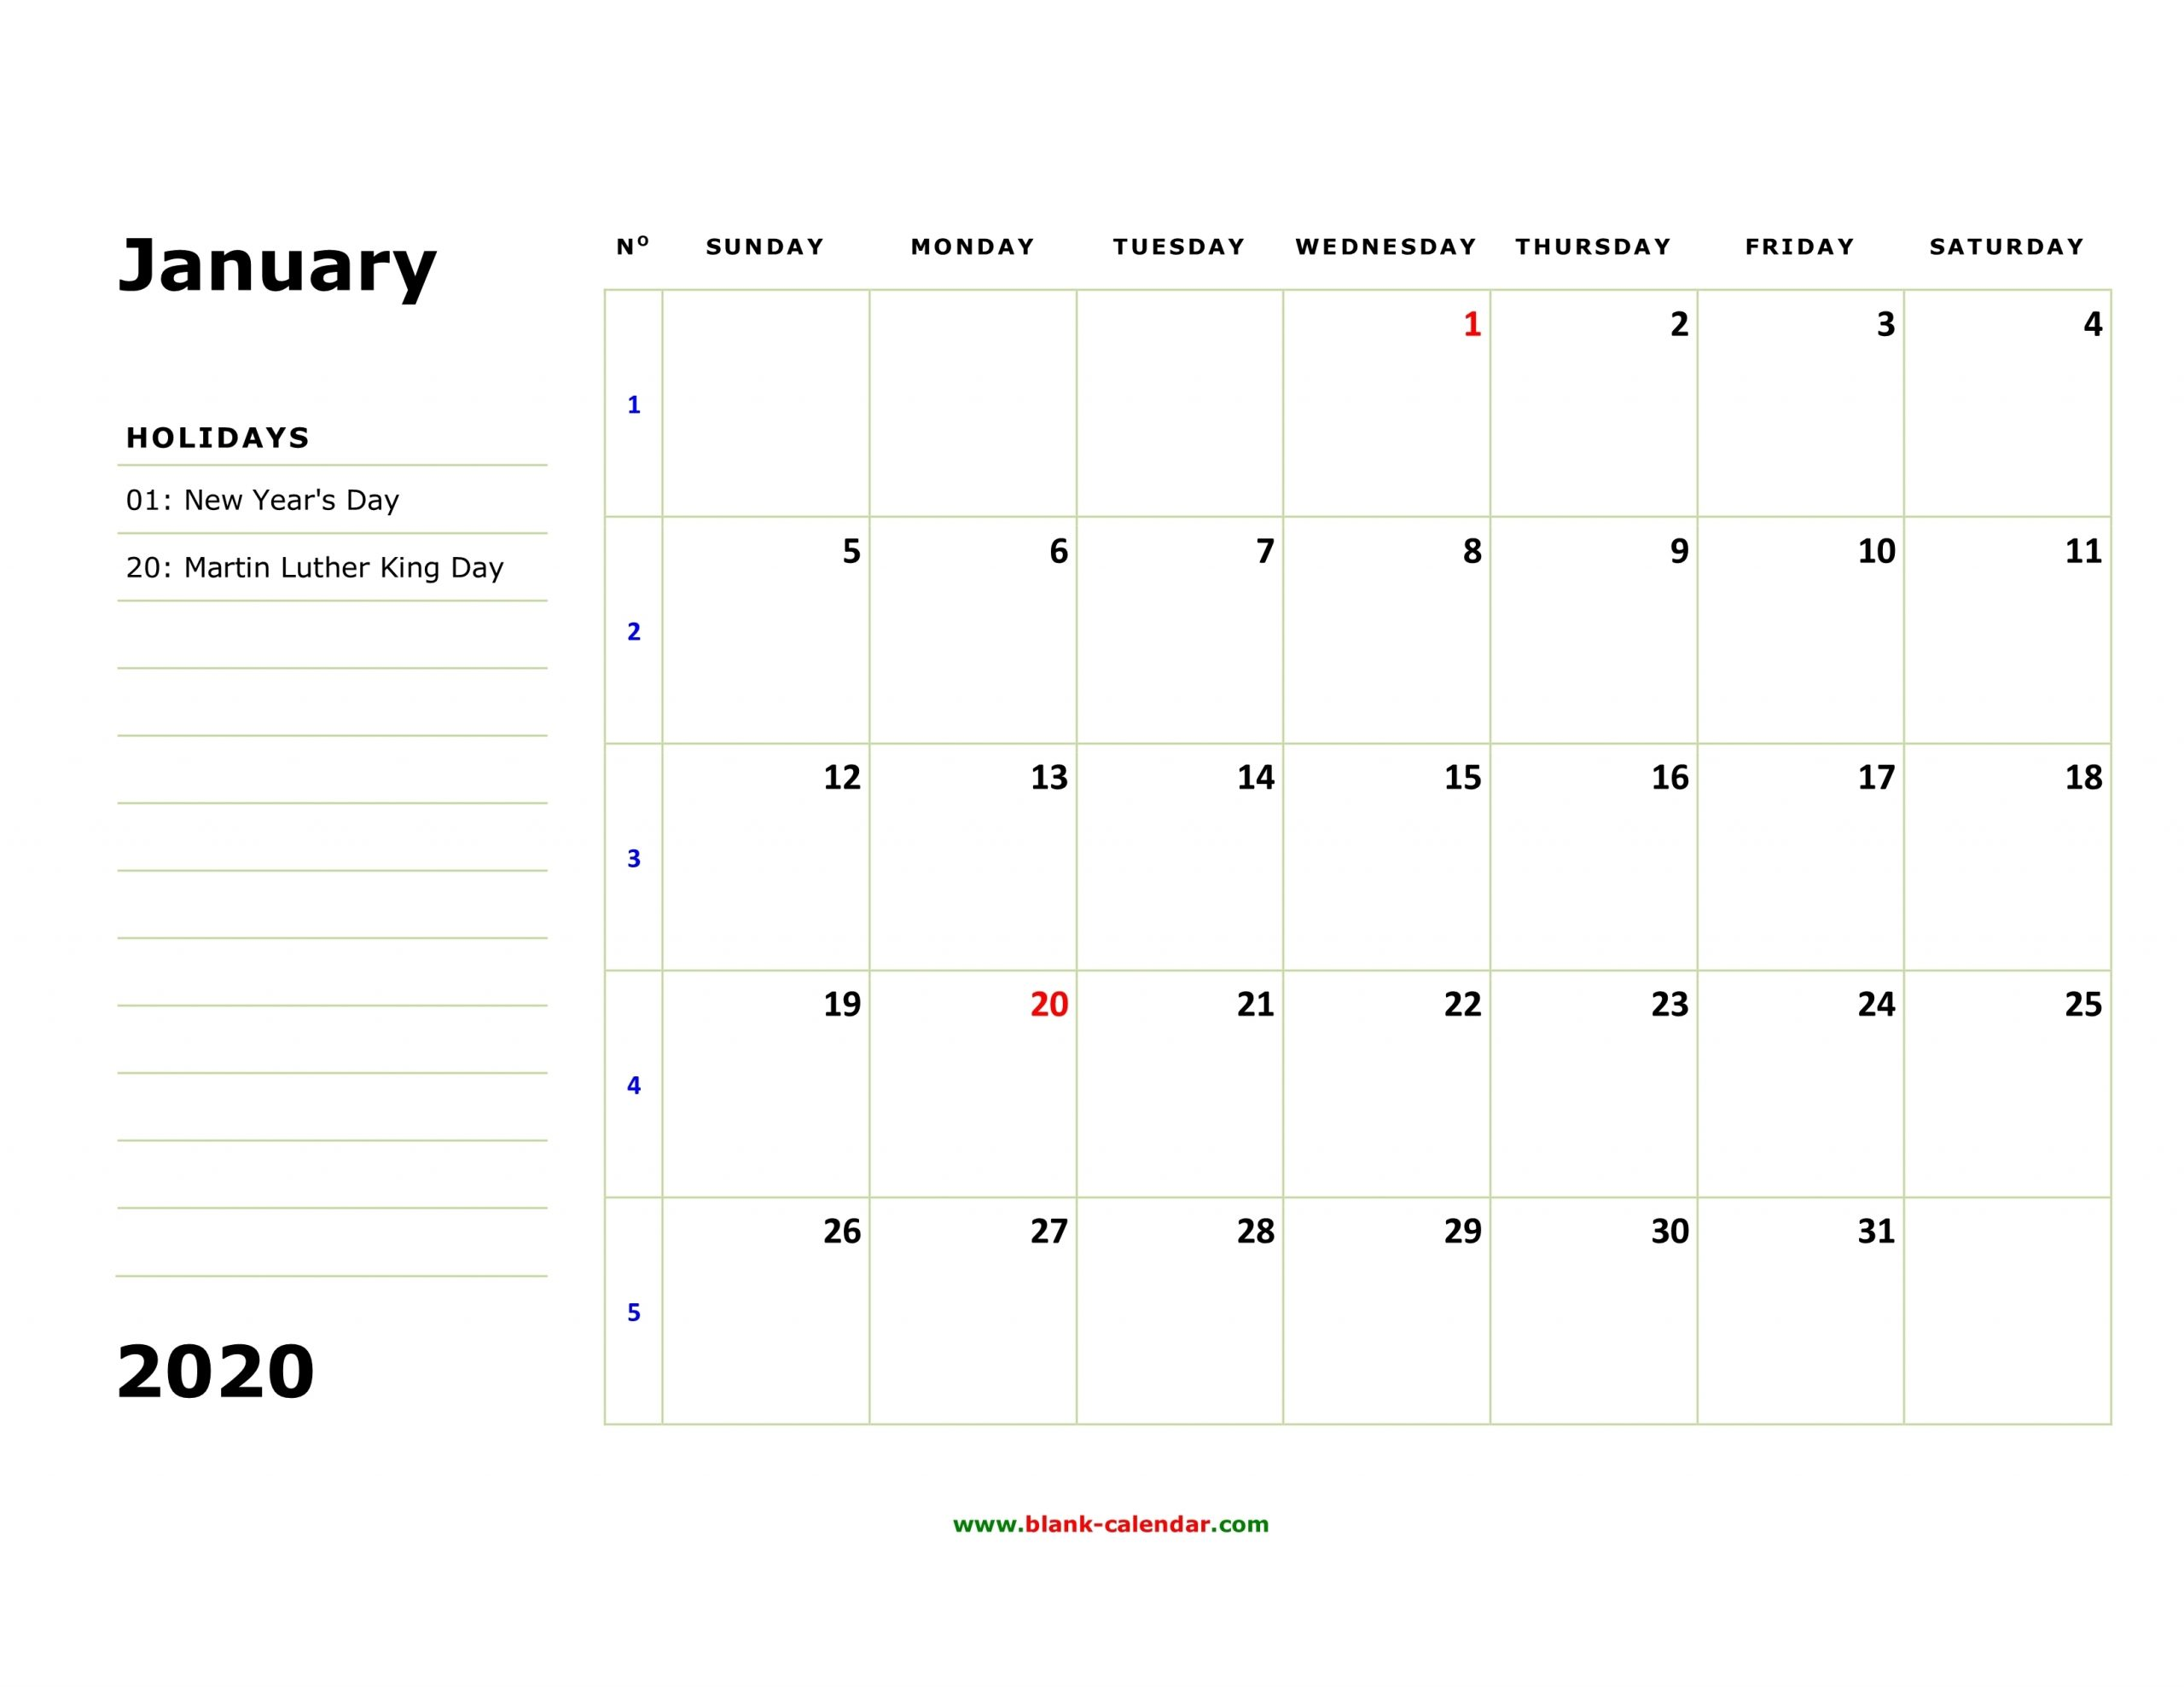 Free Download Printable Calendar 2020, Large Box, Holidays in Large Box Calendar 2020 Printable